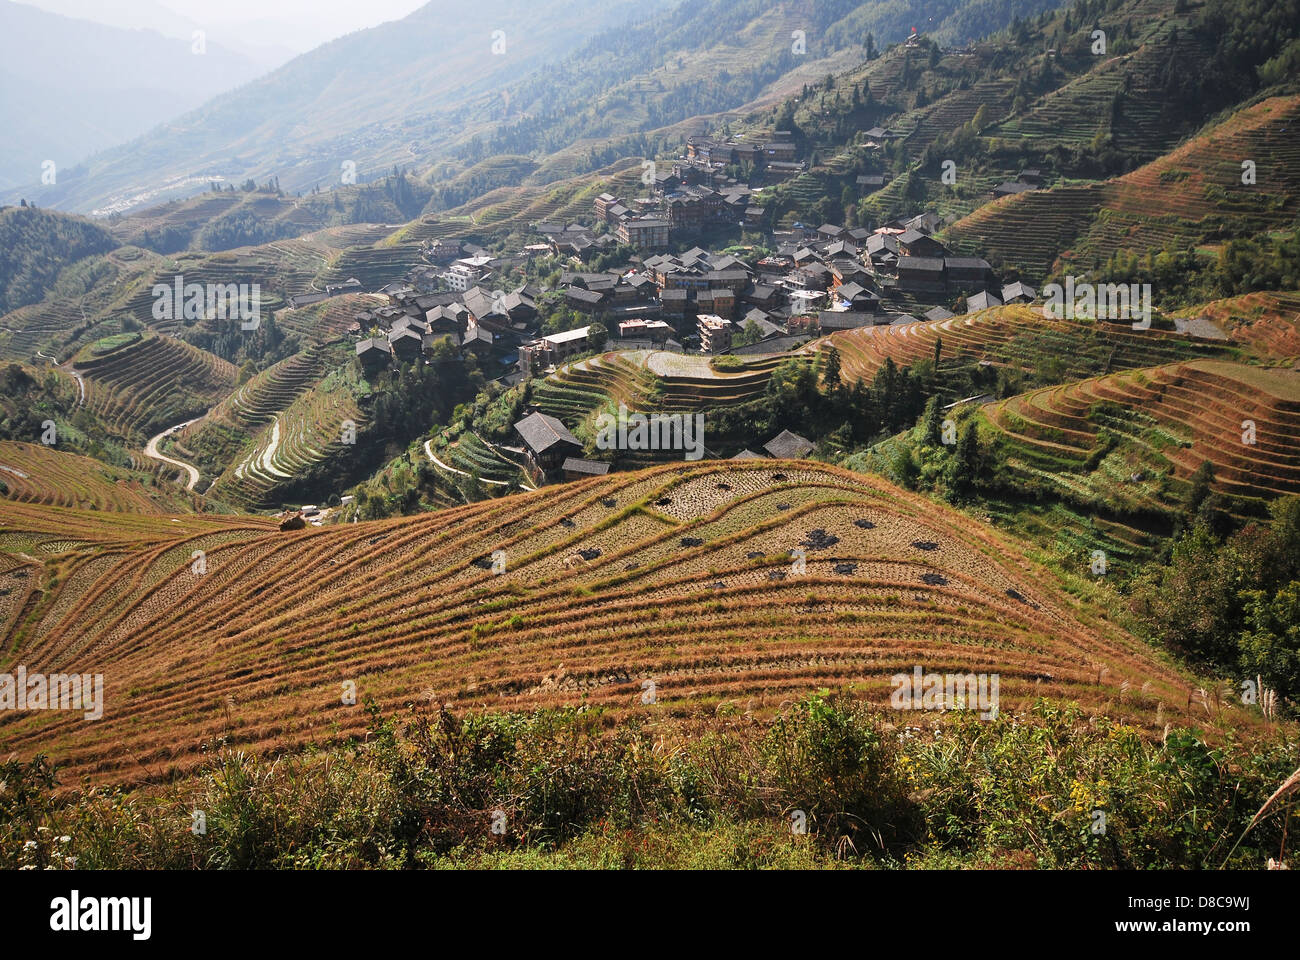 The Longsheng Rice Terraces, Guilin, Guangxi, Southern China - Stock Image